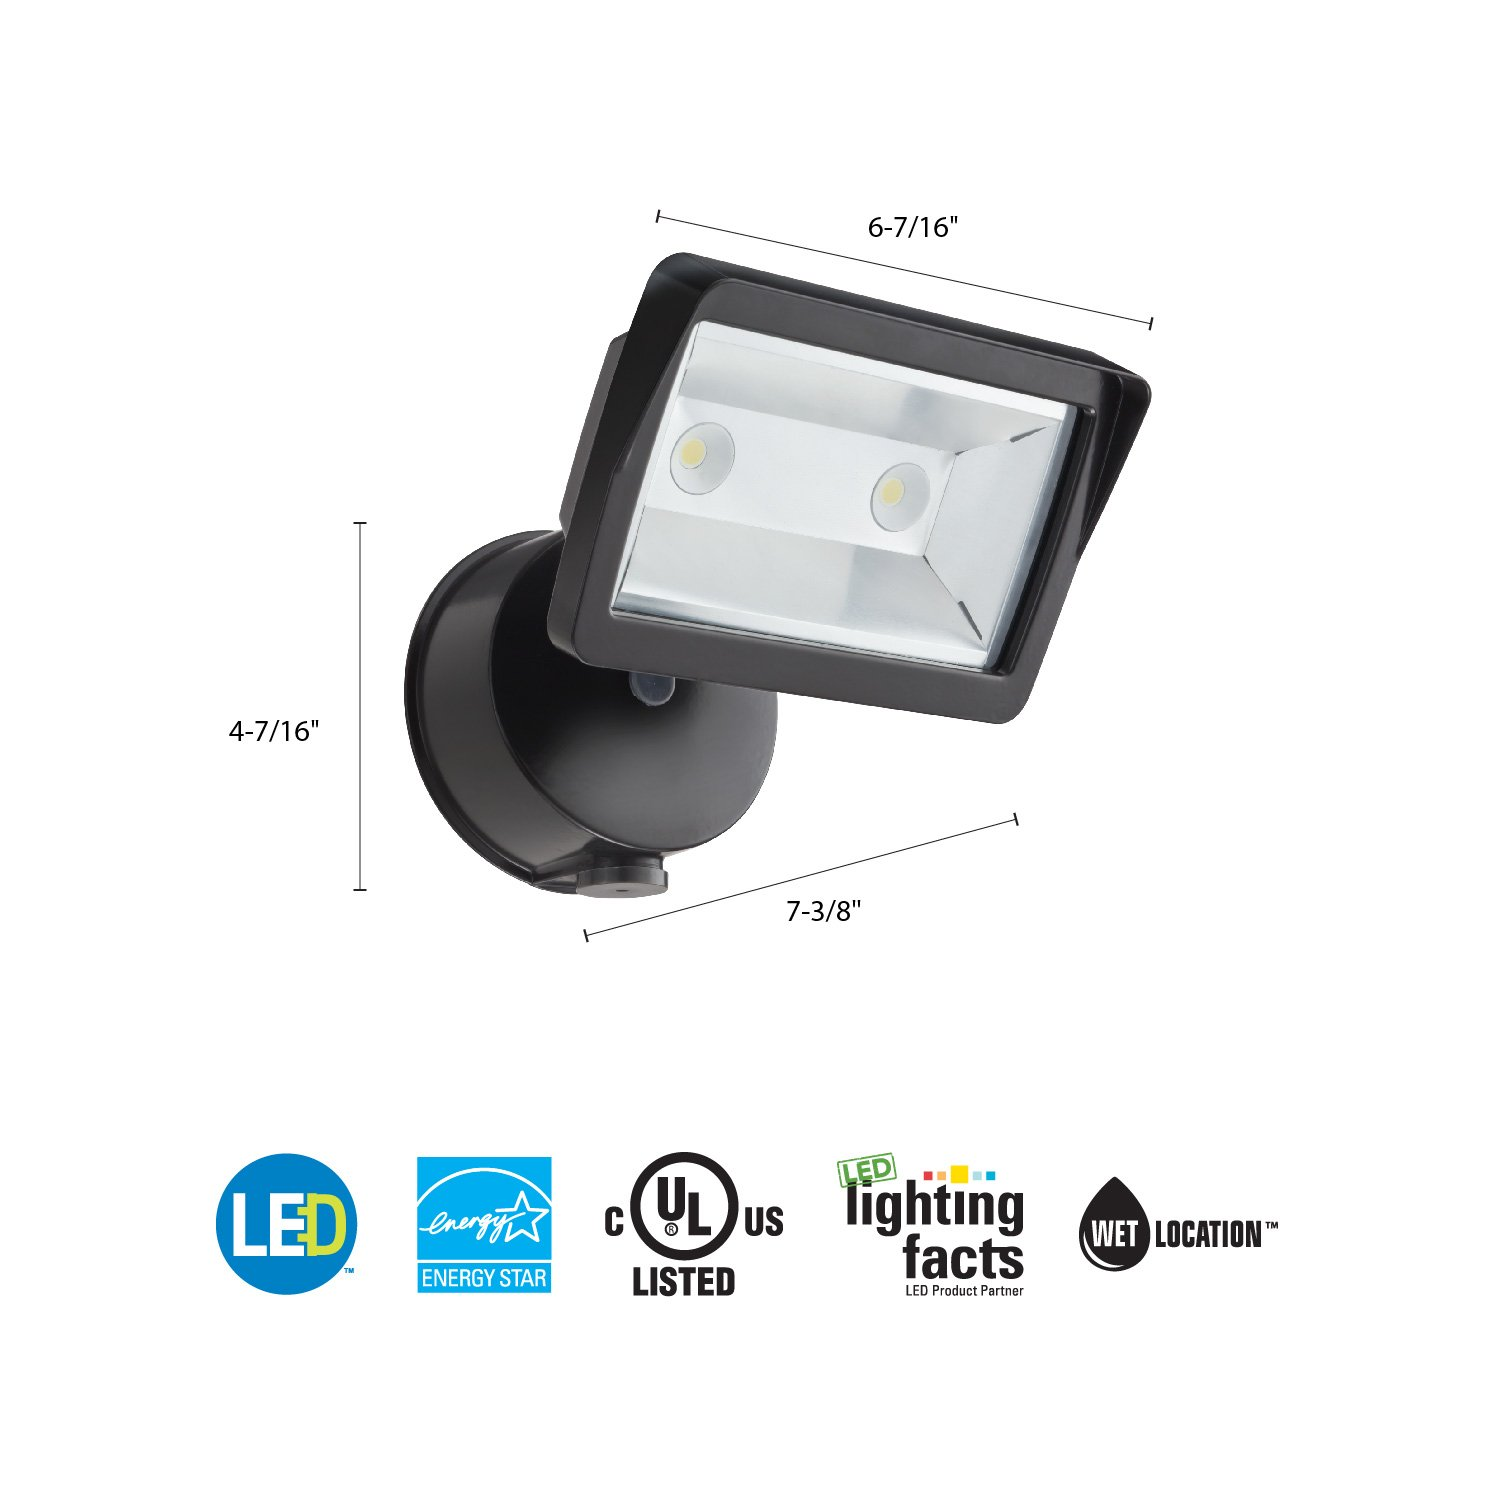 Lithonia Lighting Olfl 14 Pe Bz M4 Security Led Dusk To Dawn Wall Occupancy Sensor Wiring Diagram Free Picture Floodlight Black Bronze Flood